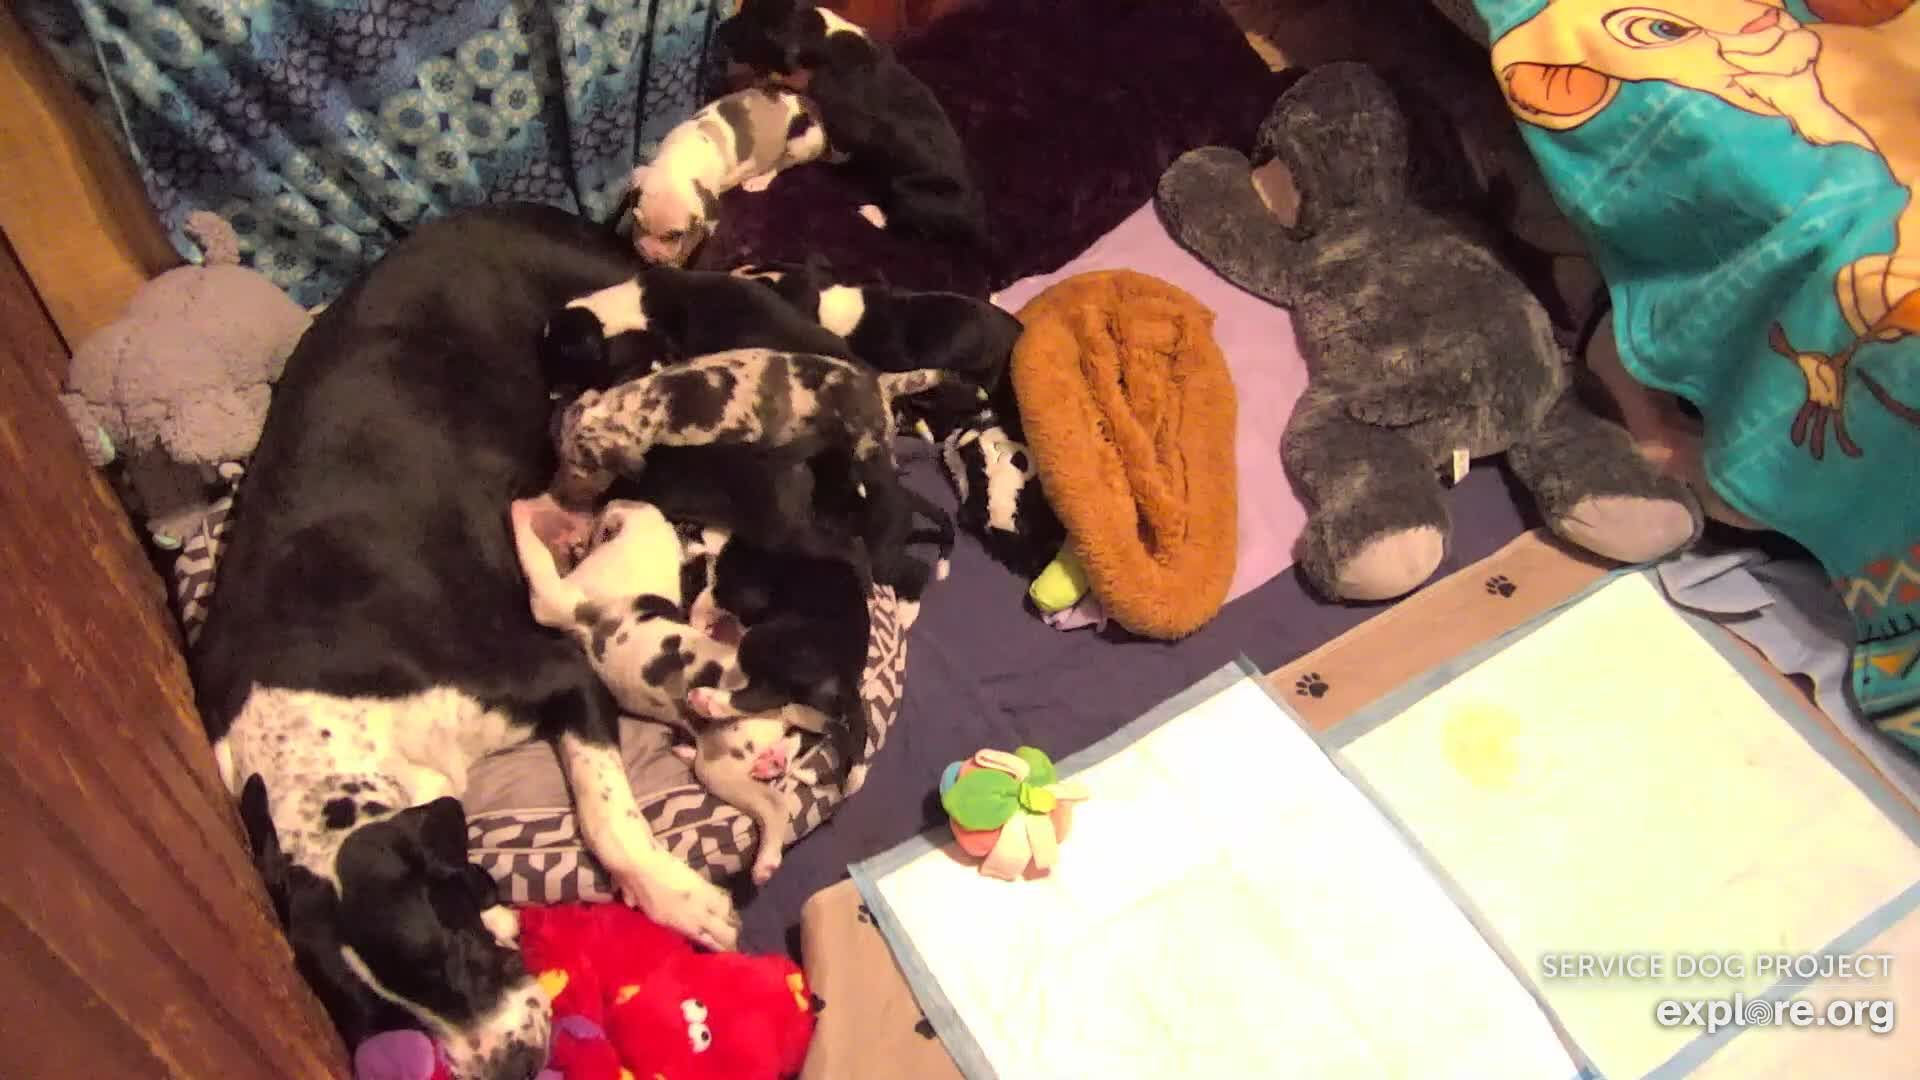 I'm watching the Service Dog Project Nursery Cam on